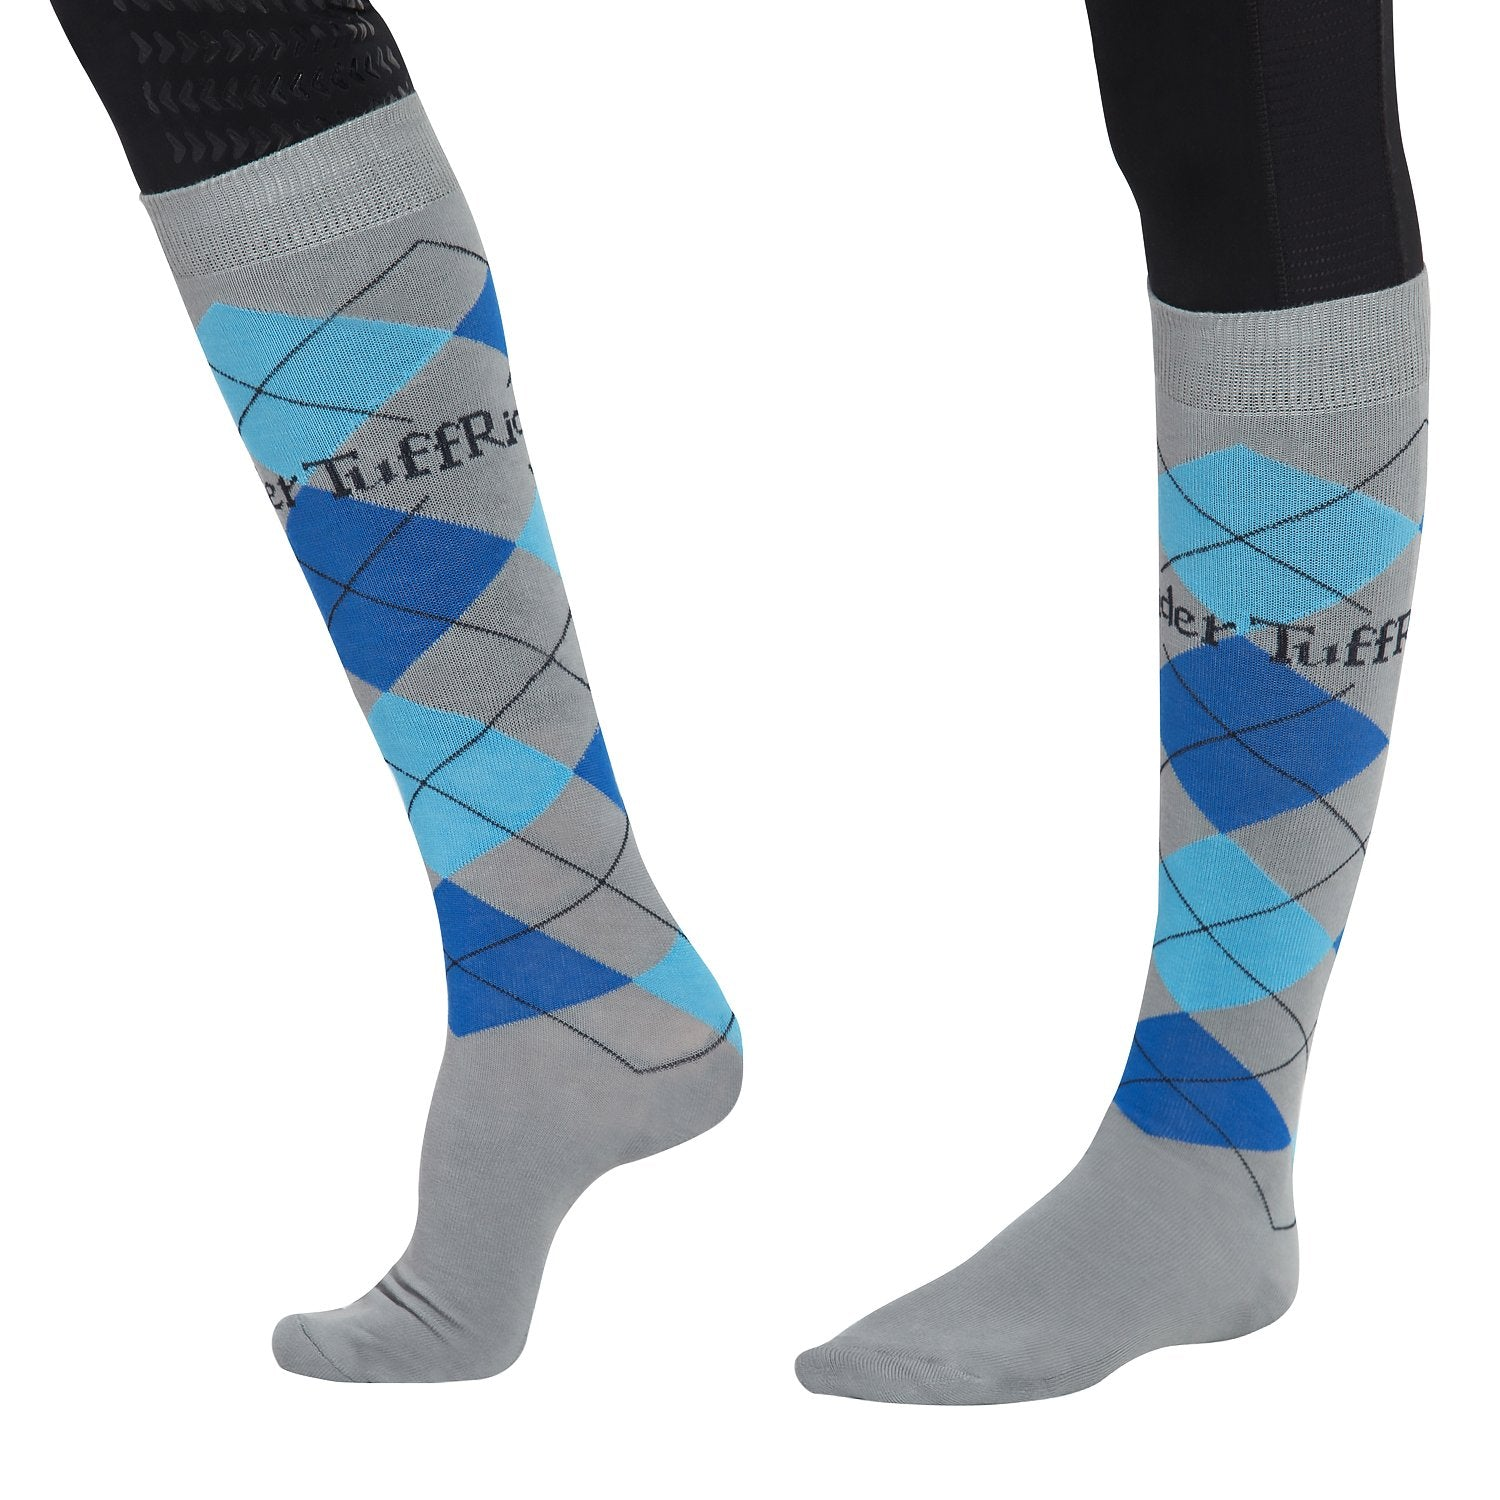 Argyle Knee Hi Socks - TuffRider - Breeches.com